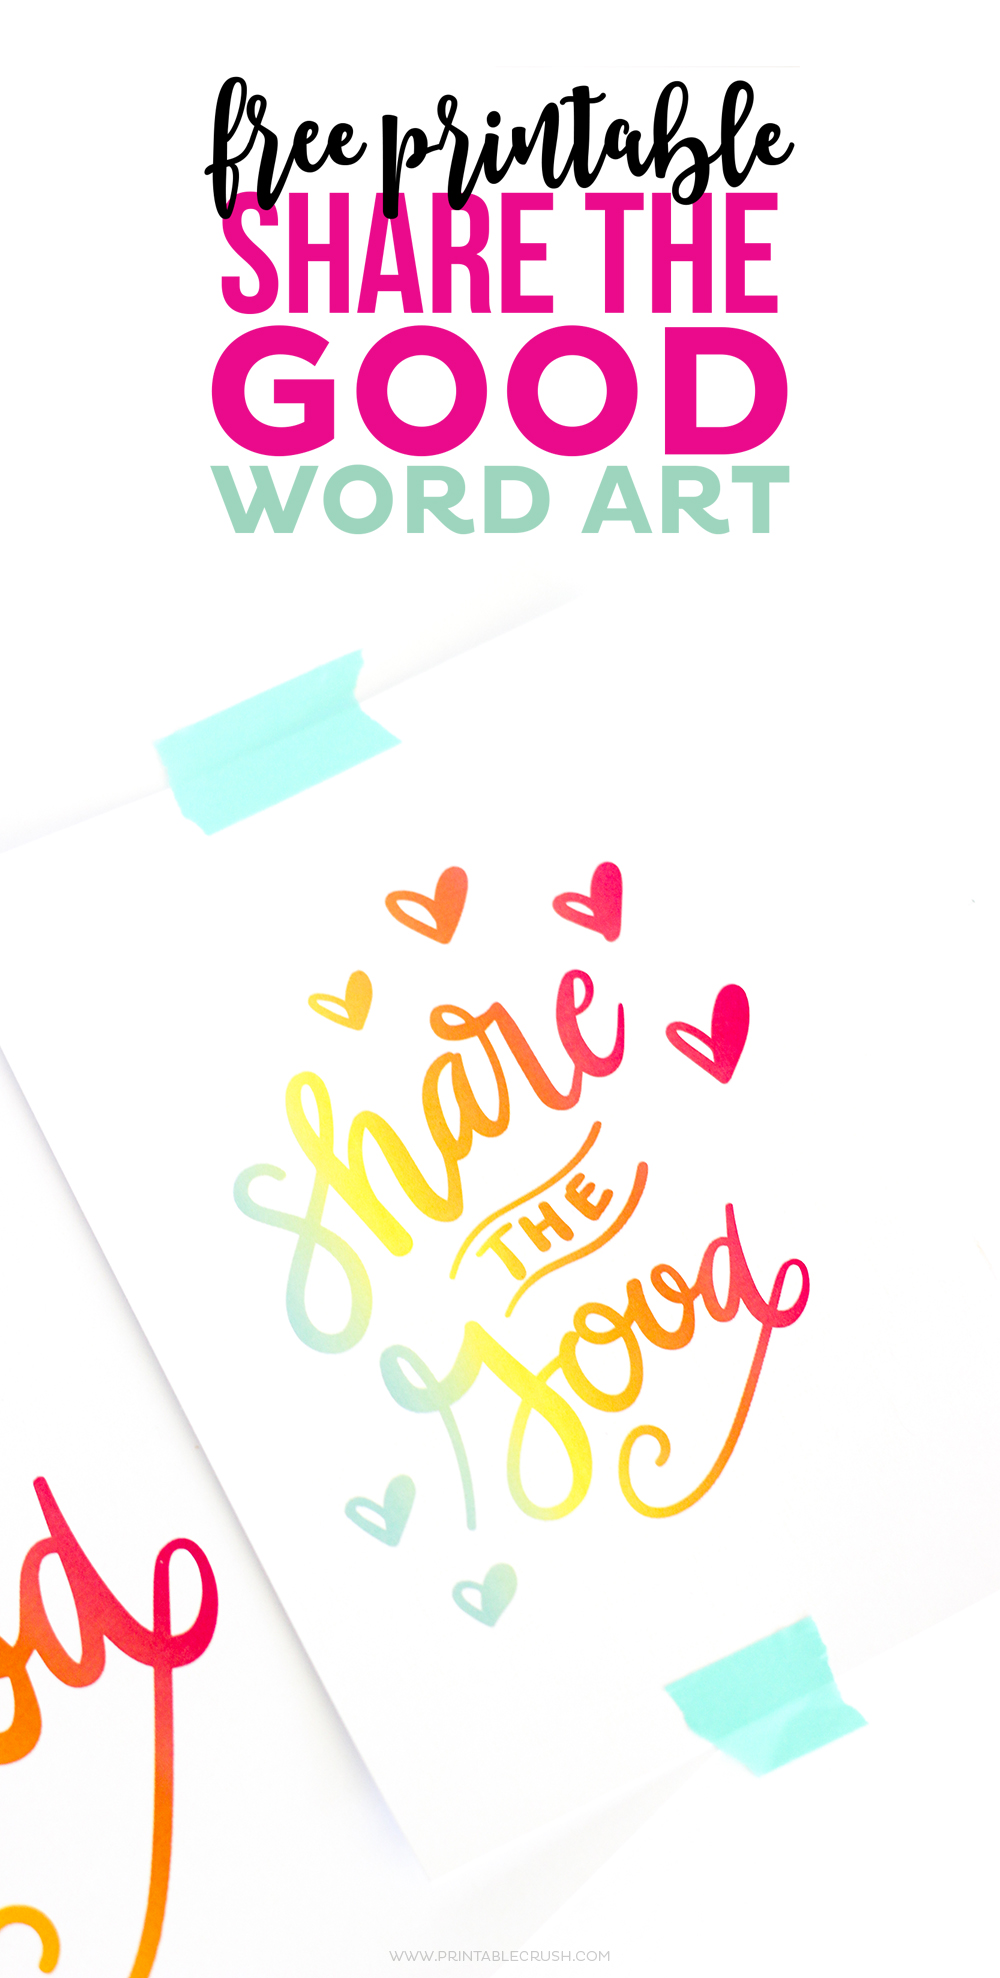 This bright and colorful Share the Good Printable Word Art will be the perfect addition to your modern and colorful home!